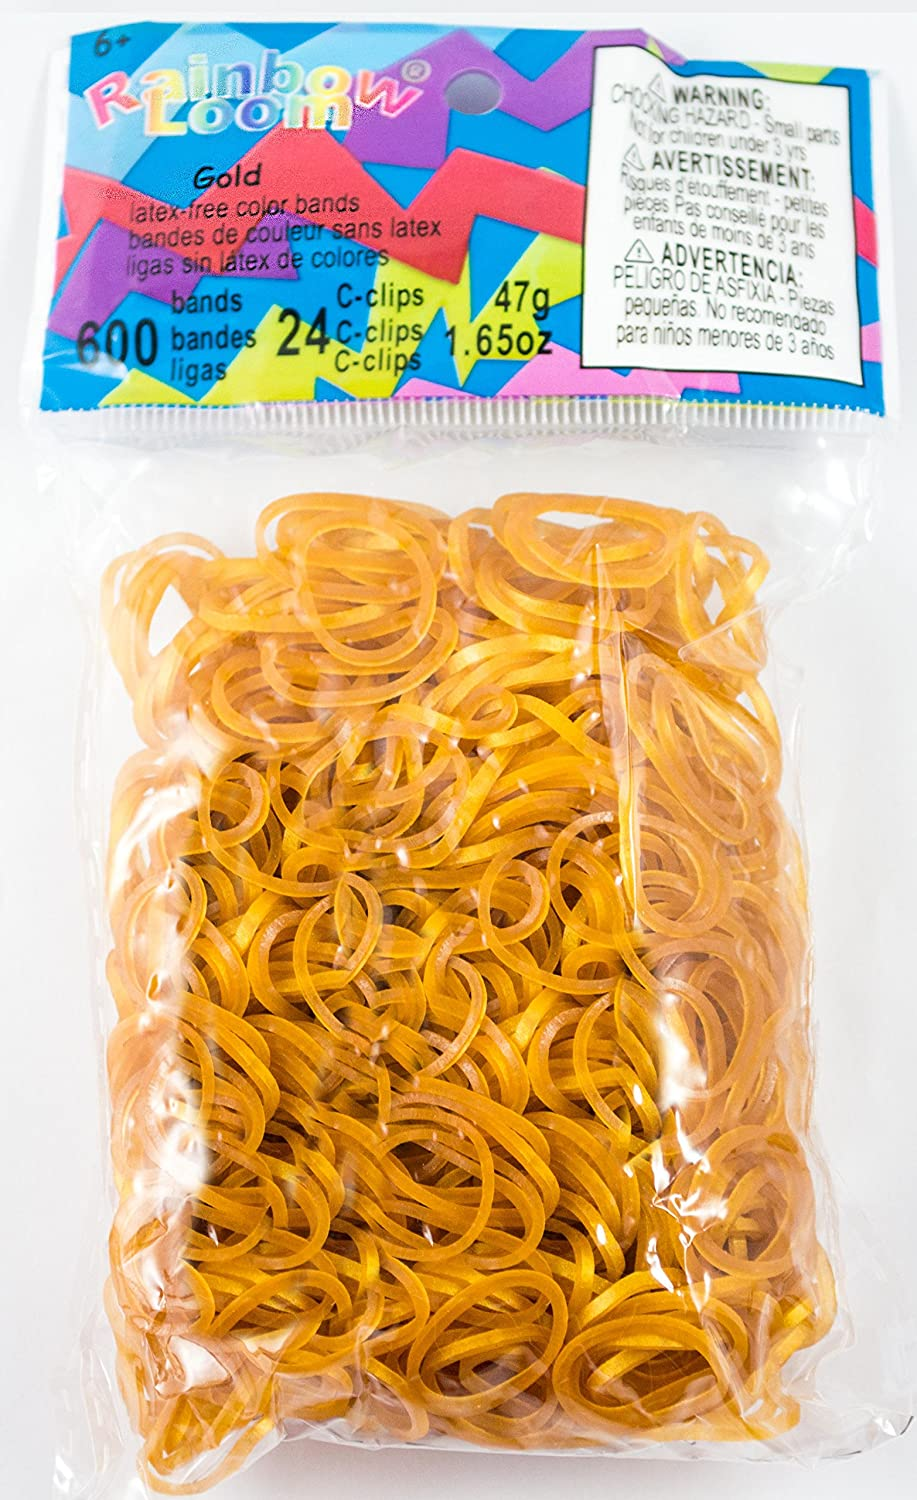 RAINBOW LOOM Gold Rubber Bands with 24 C-Clips (600 Count) B0101